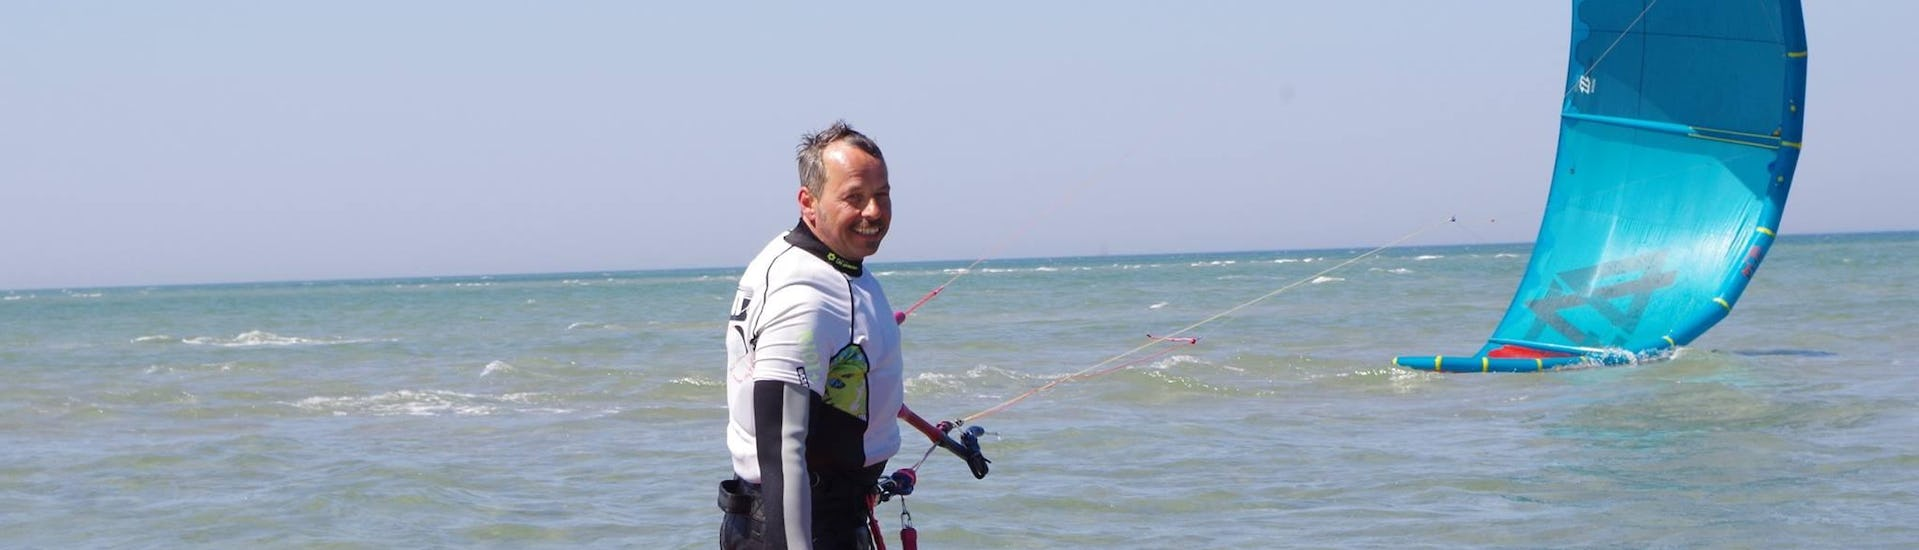 Private Kitesurfing Lessons for Kids & Adults